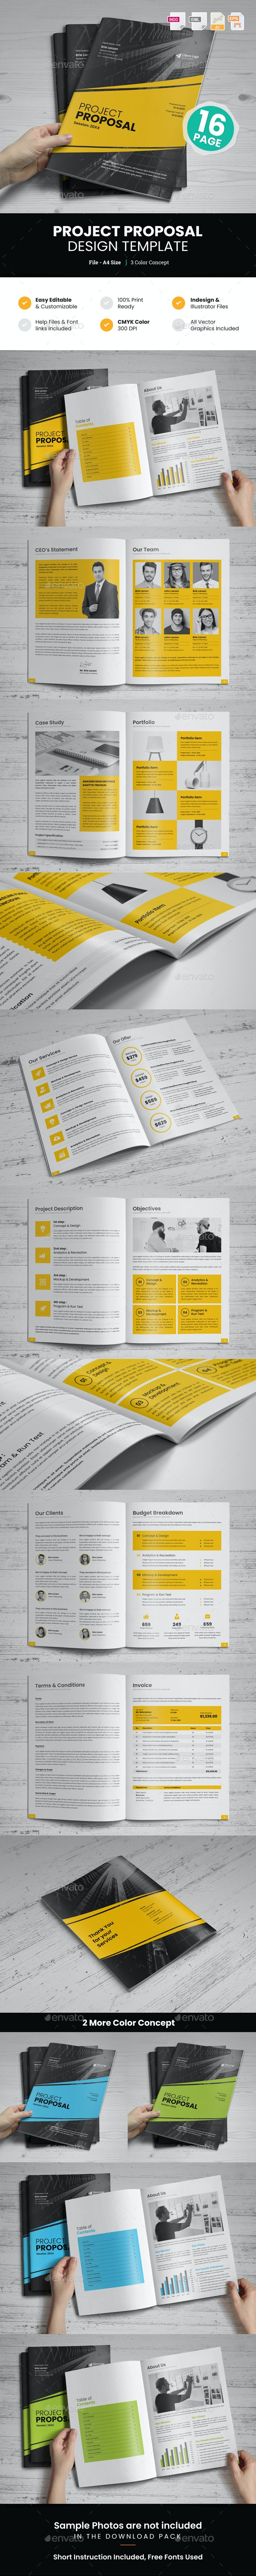 Project Proposal Design v3 - Proposals & Invoices Stationery